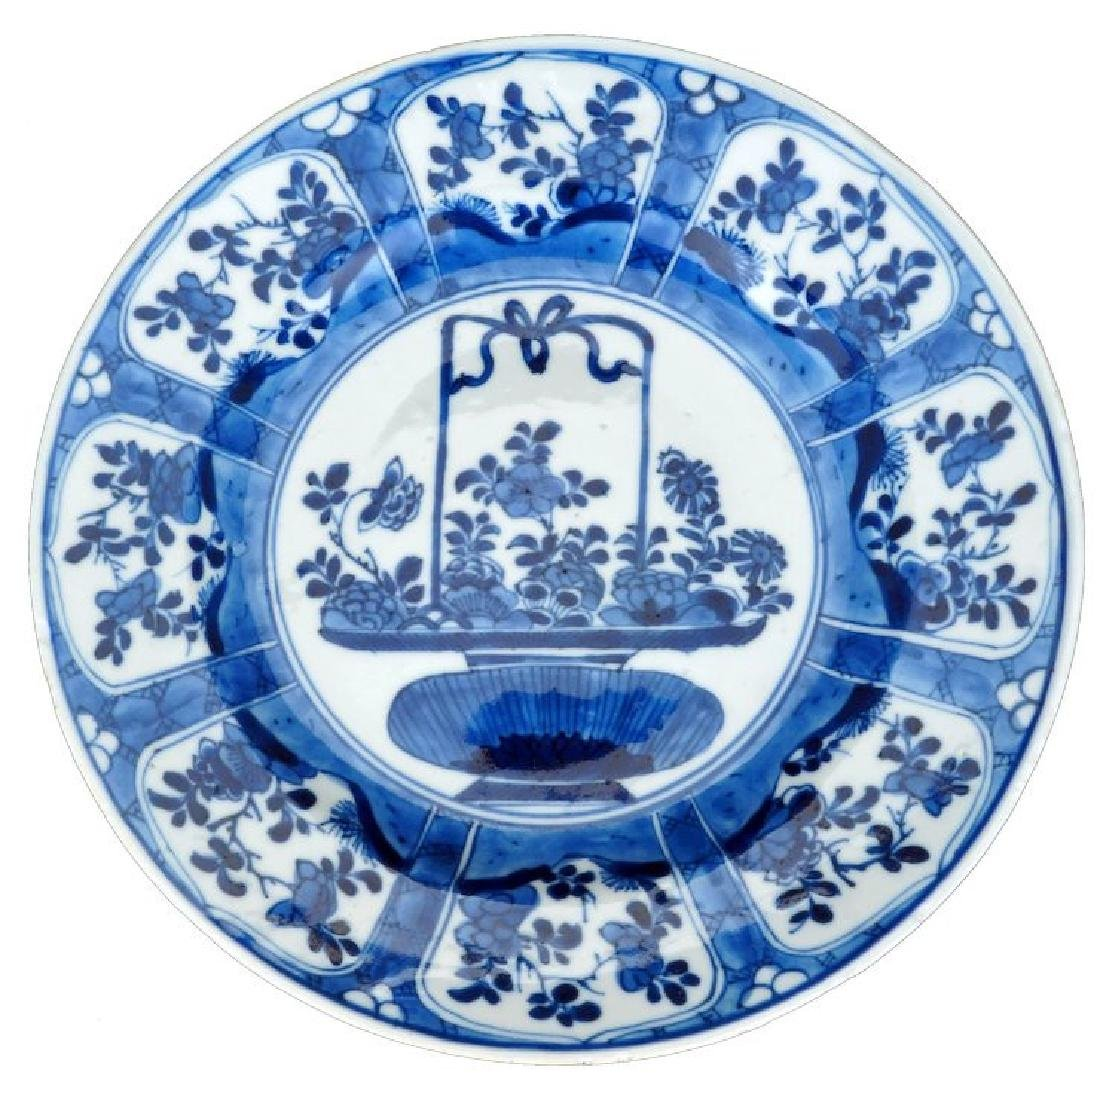 Chinese blue and white porcelain plate with flower